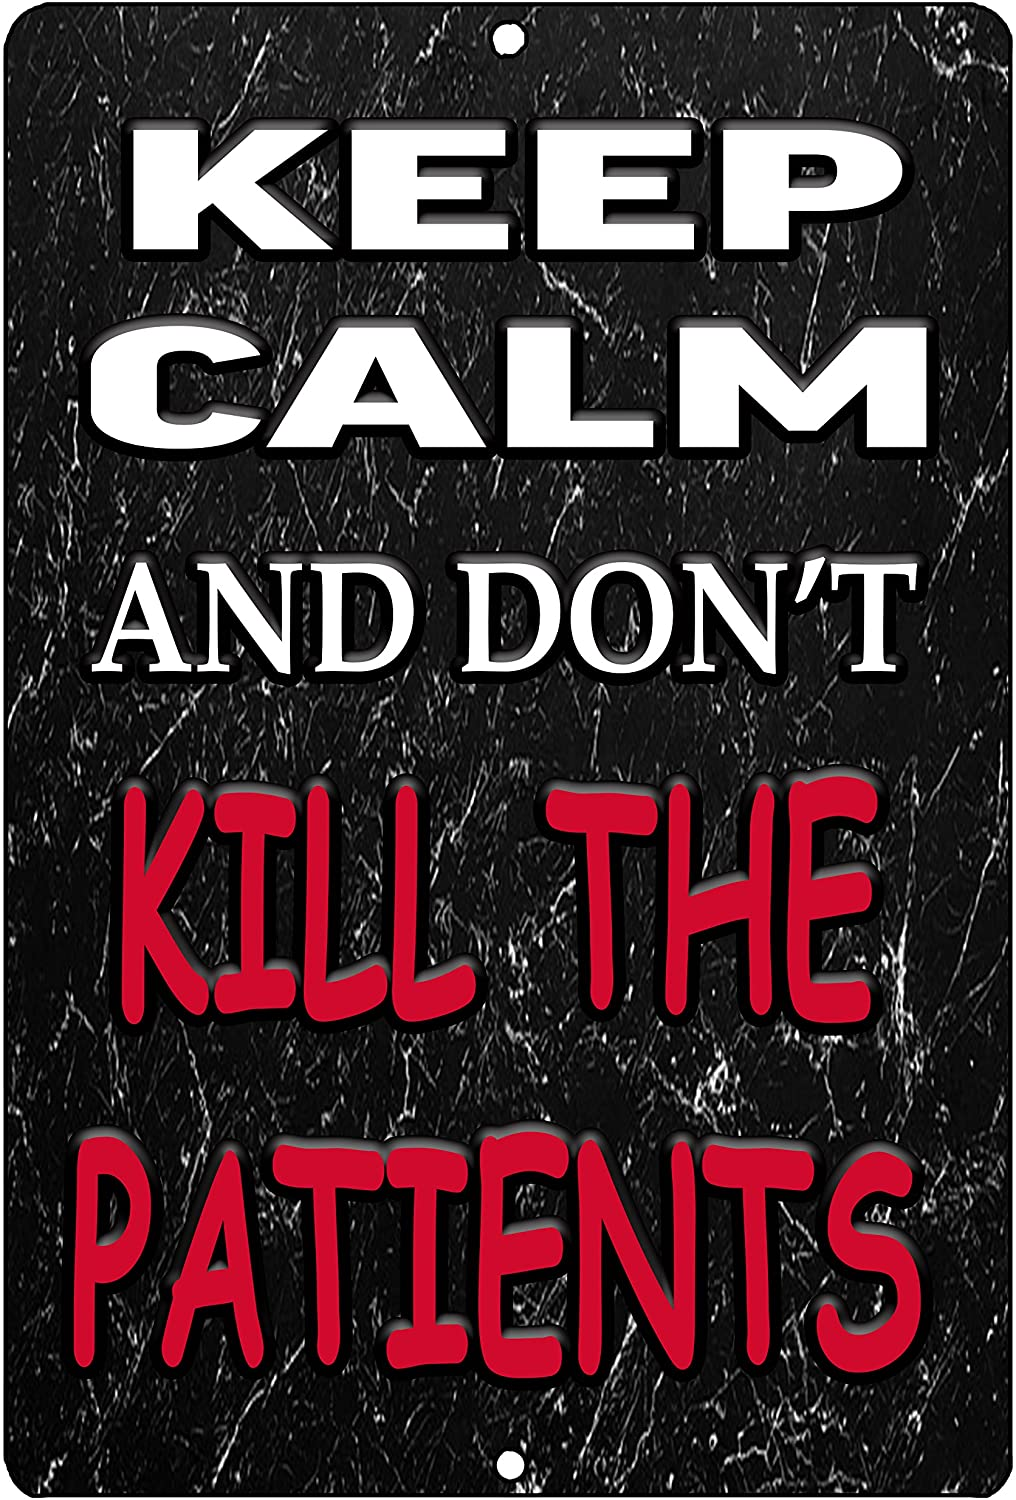 Rogue River Tactical Funny RN Nurse CNA Nursing Metal Tin Sign Wall Decor Bar Keep Calm Don't Kill Patients